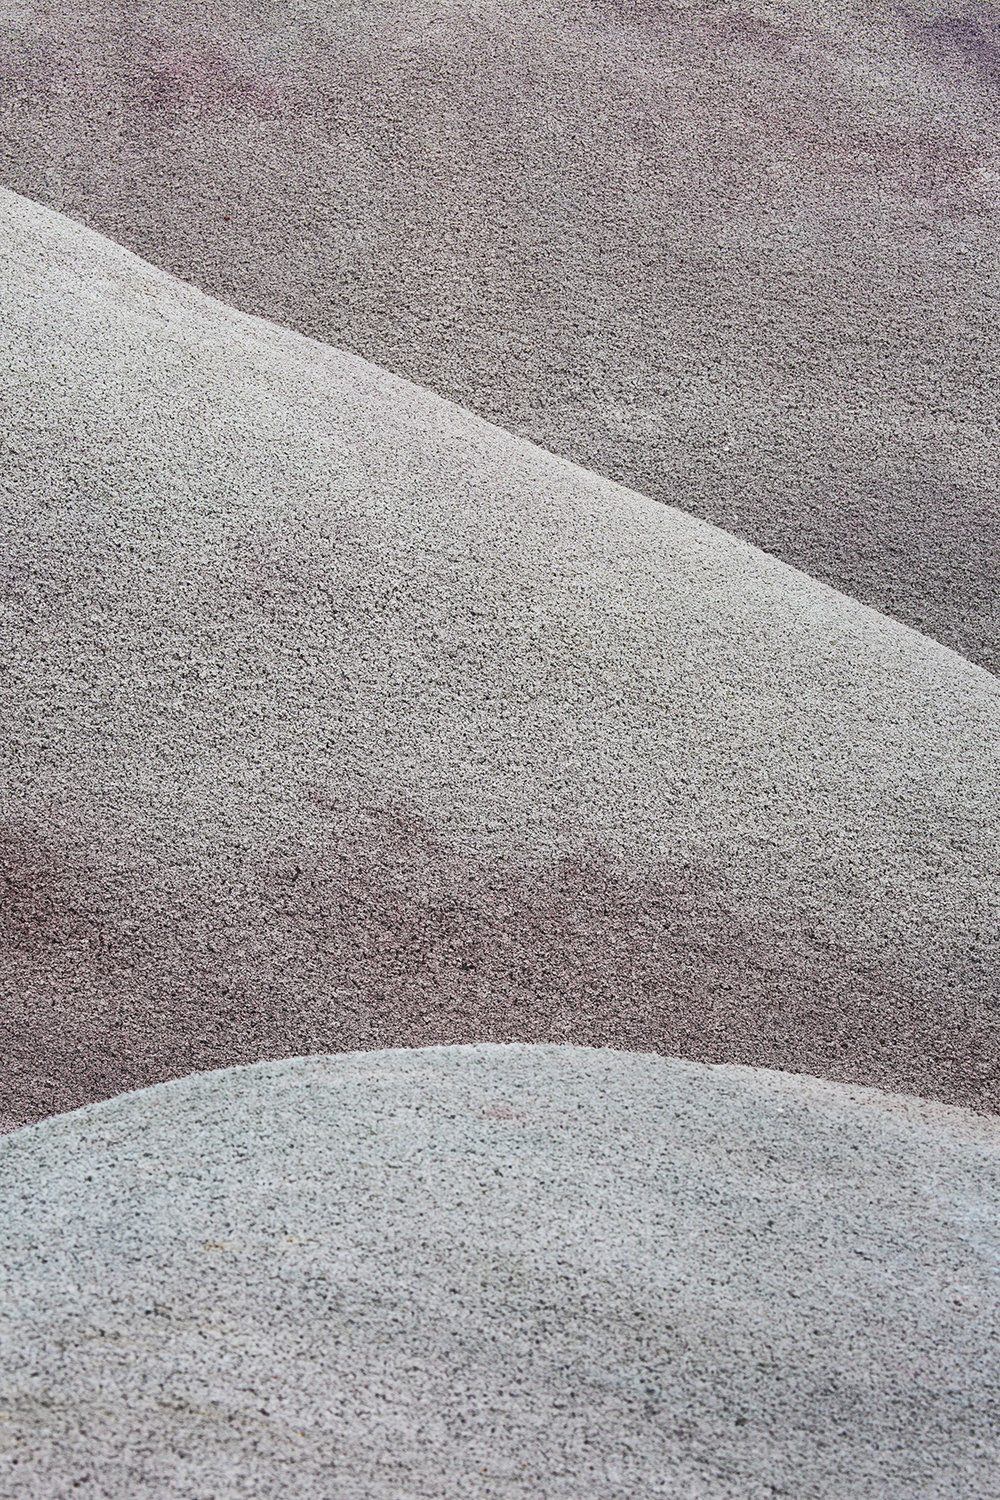 © duston todd_capitol reef_desert_painterly_lines_web.jpg